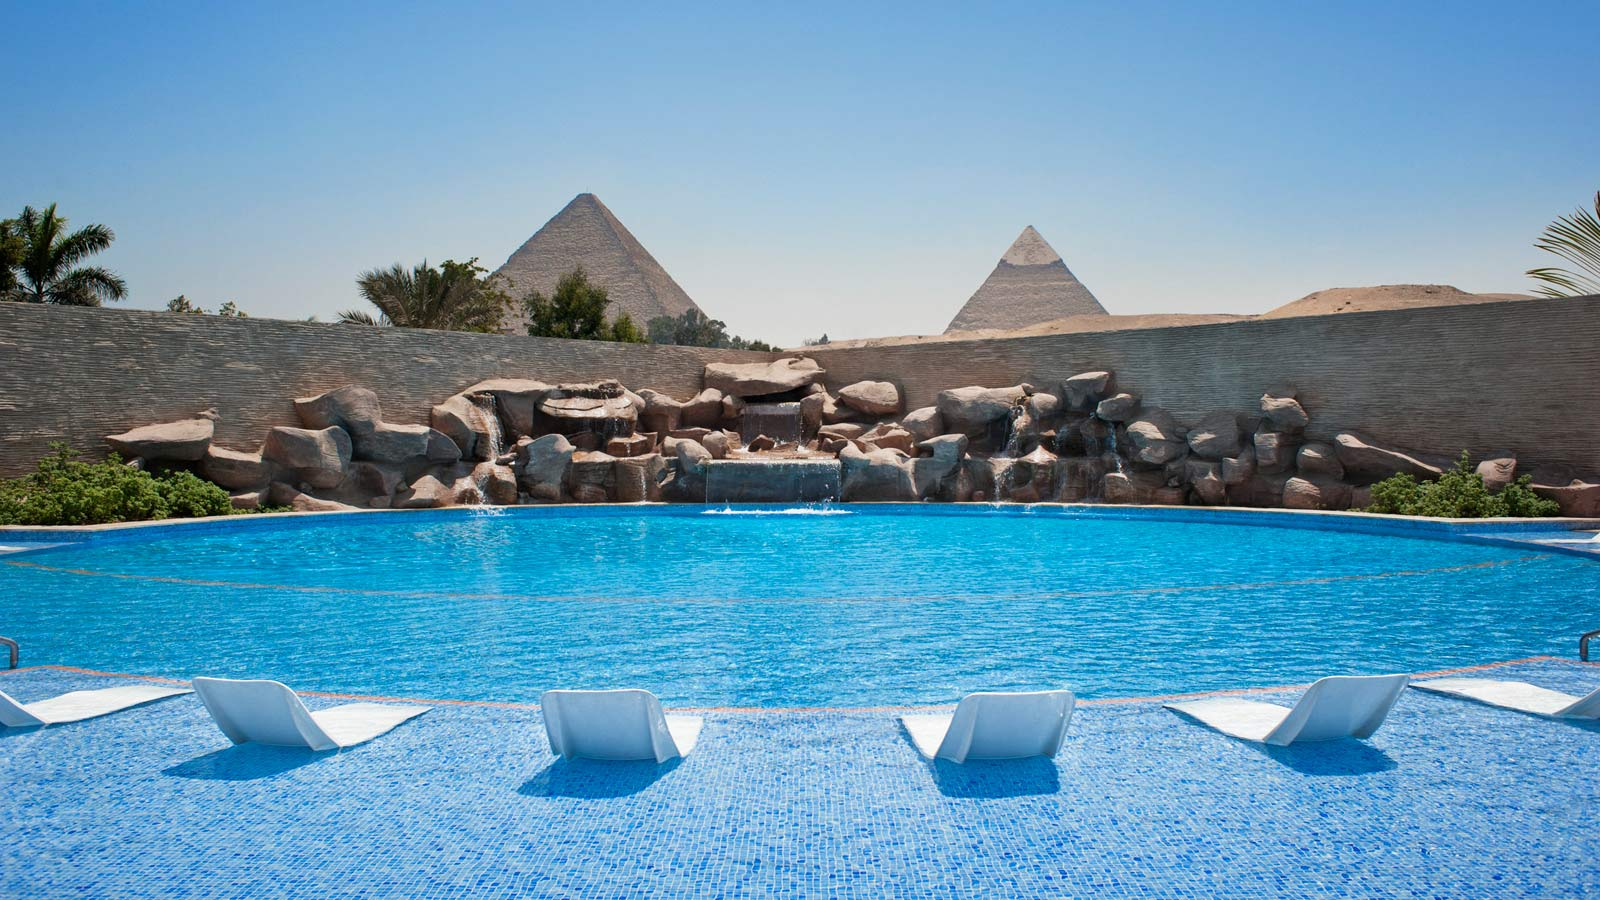 Egypt days 3 and 4: Le Meridien Pyramids Hotel and MS Royal Esadora ...